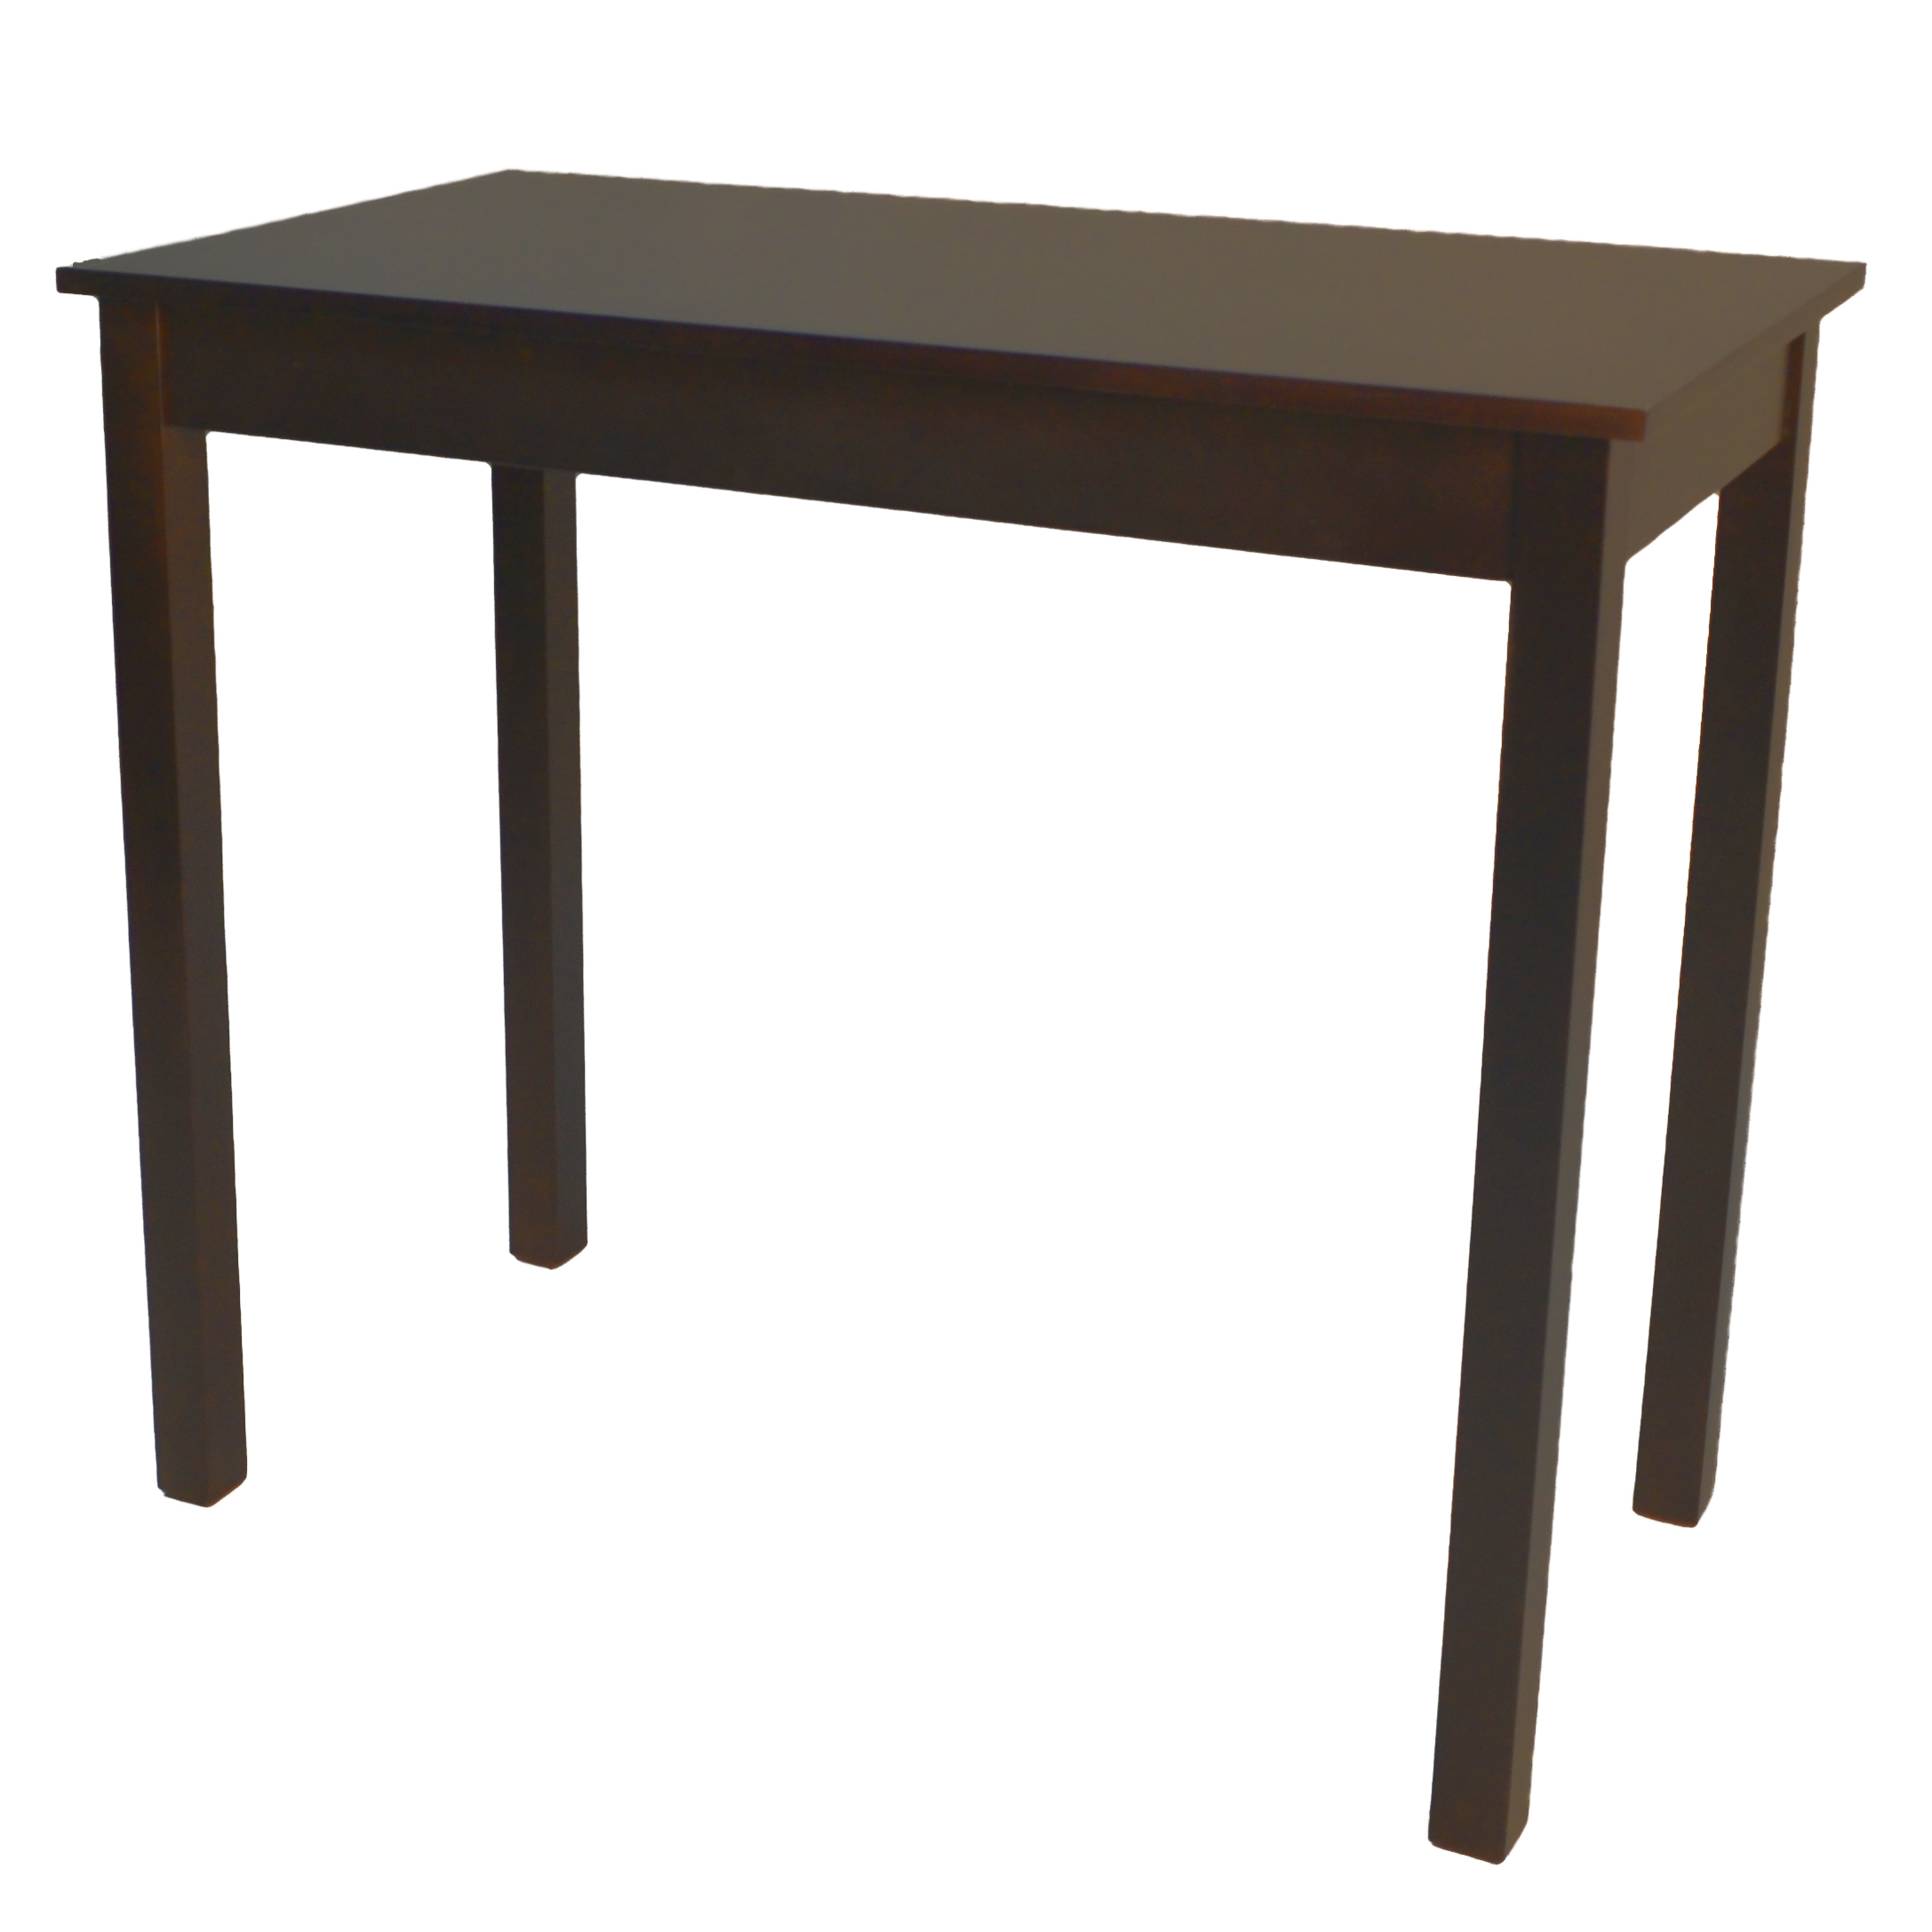 Bradford Bar Table, Espresso